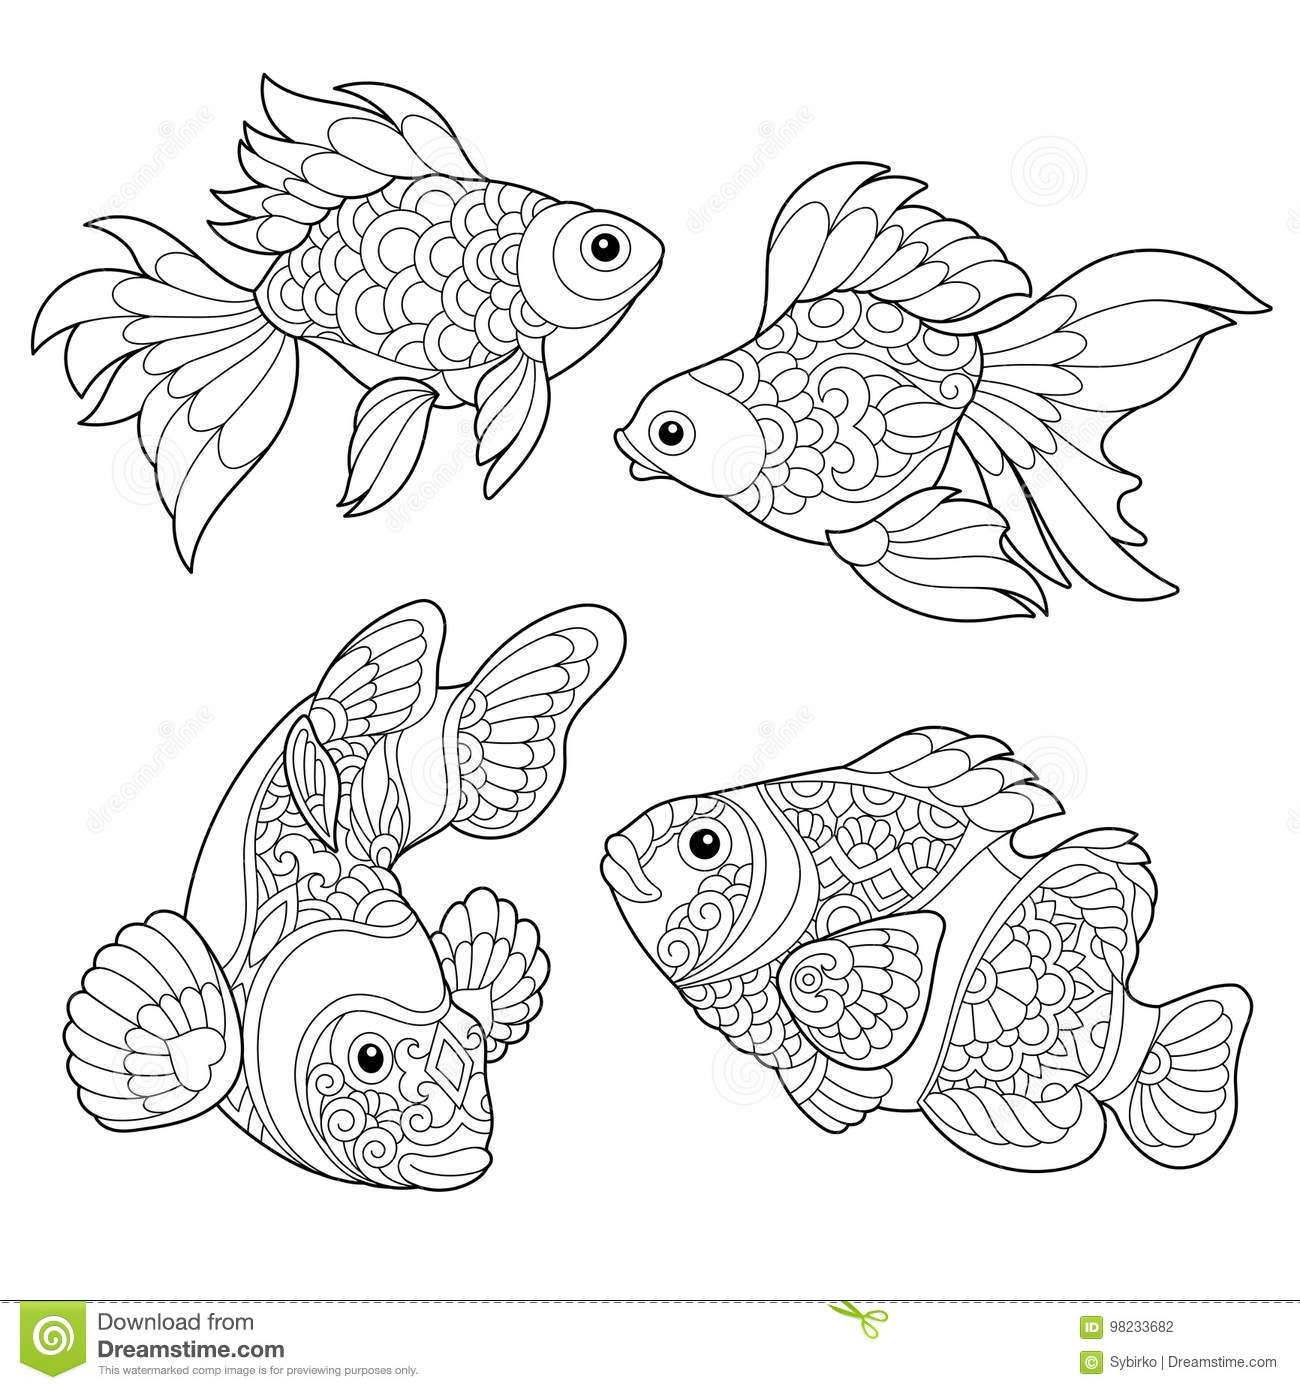 Mandala fond zentangle dessin poisson stylis - Dessin poisson stylise ...